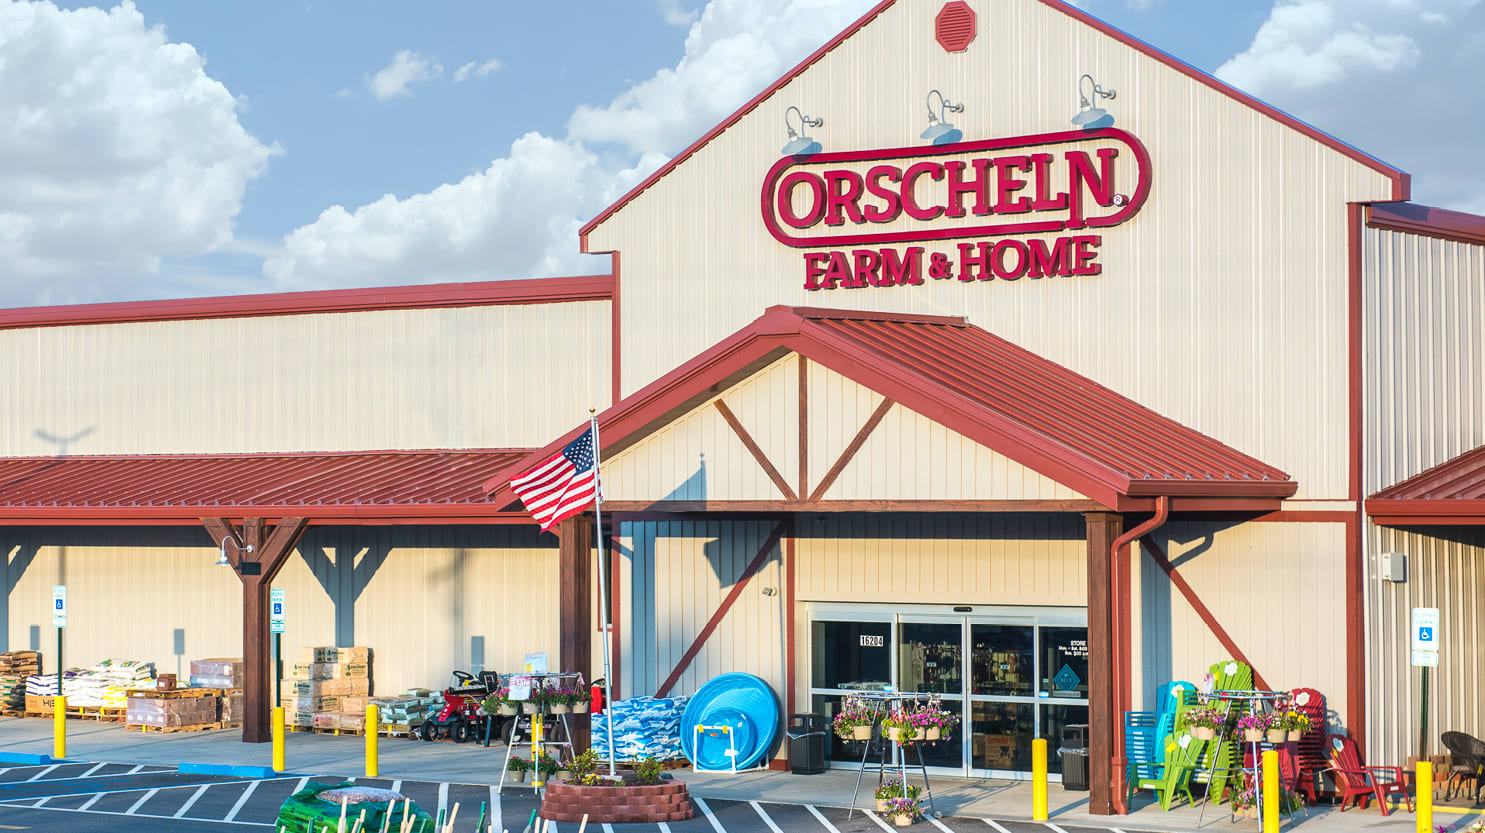 Front view of Orscheln Farm & Home Store in Muskogee, Oklahoma 74403